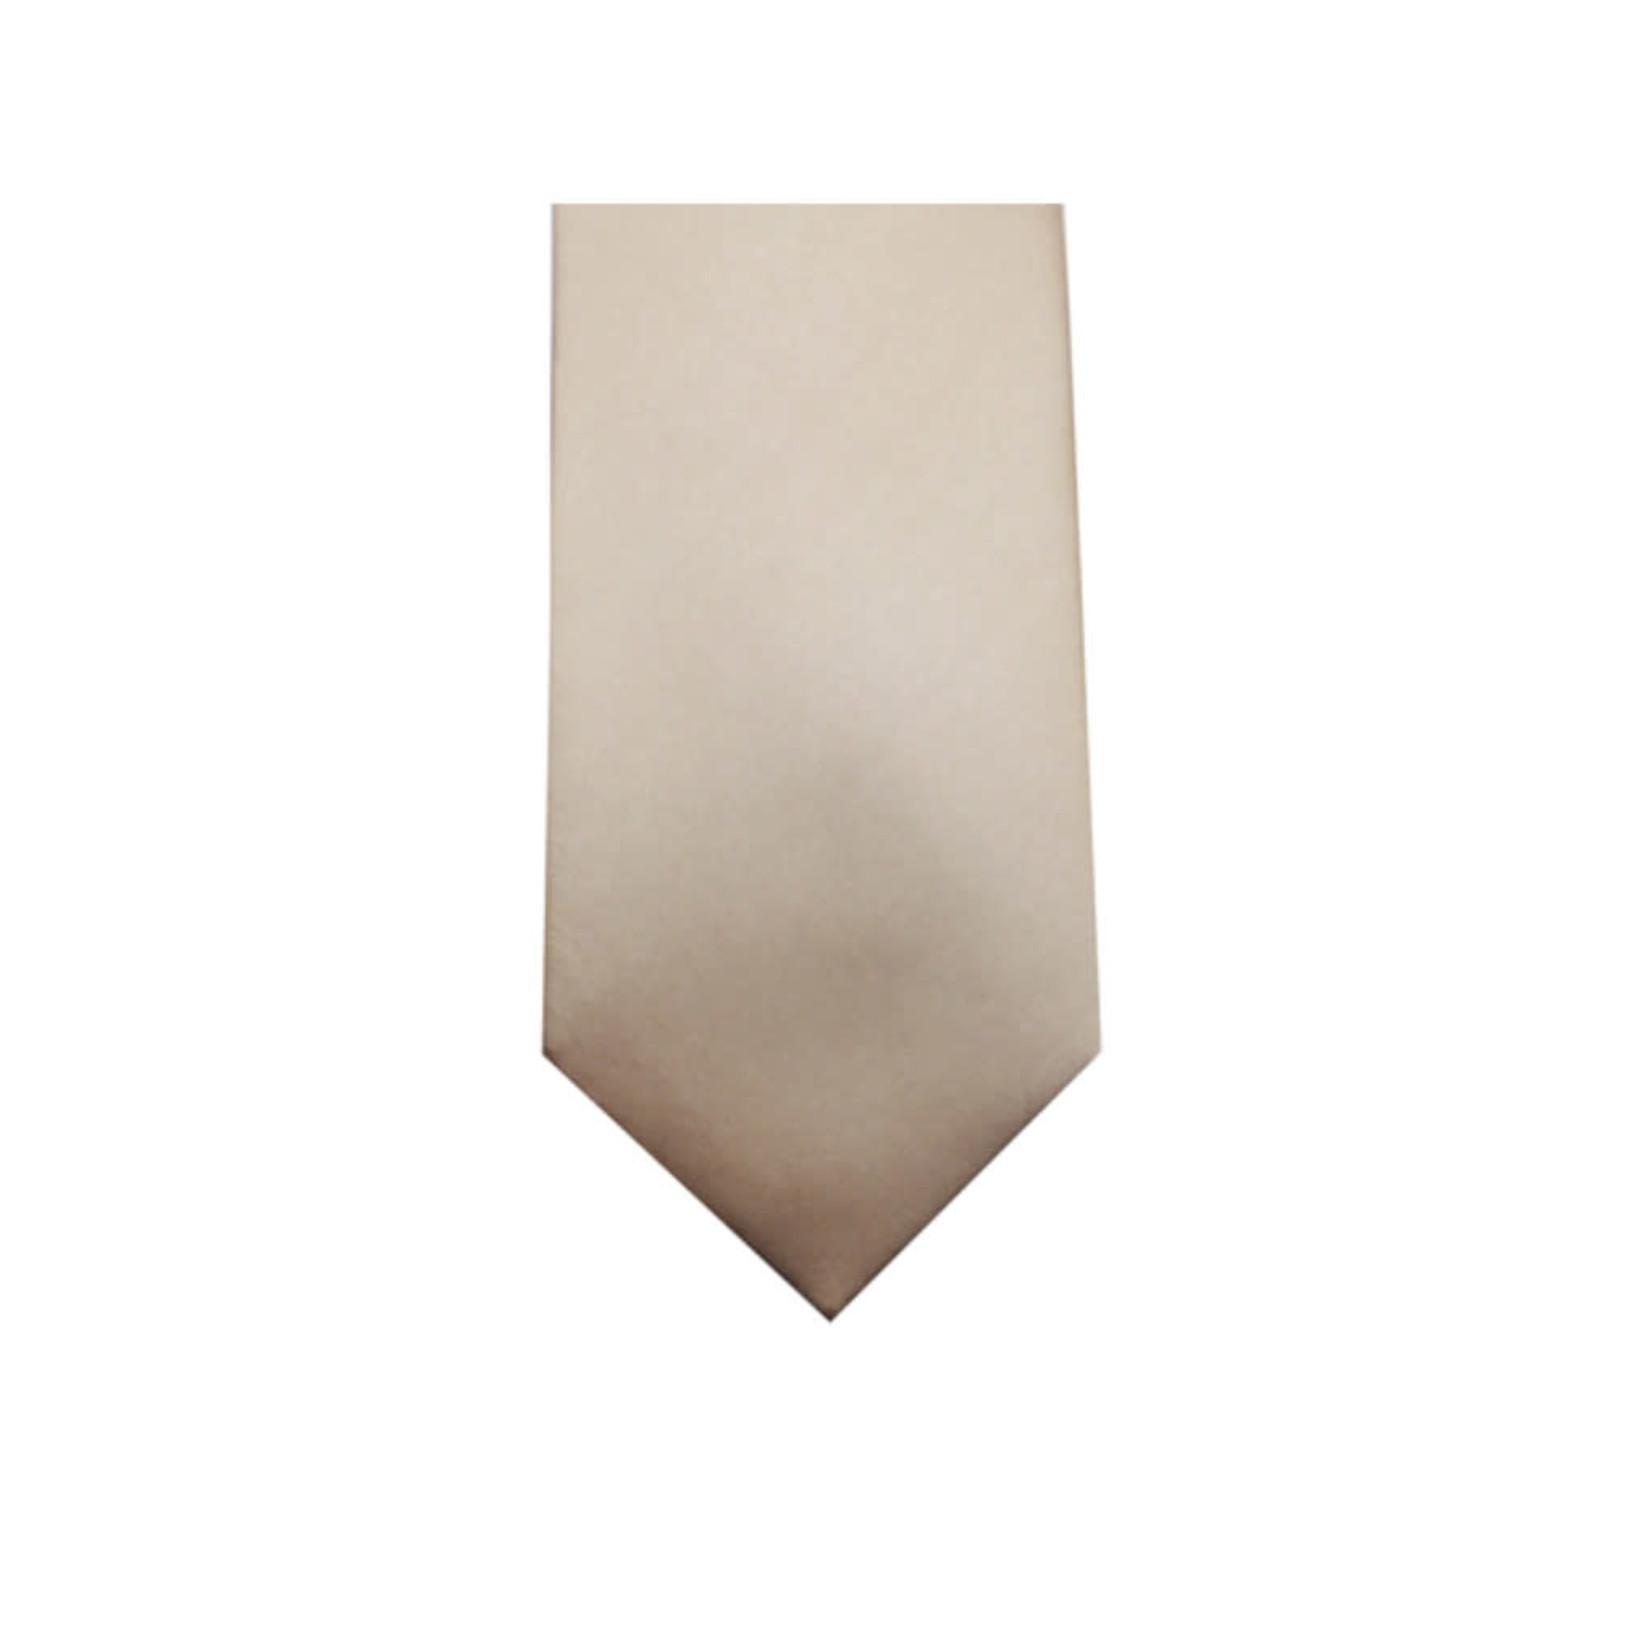 Knotz M100-56 Solid Champagne Tie